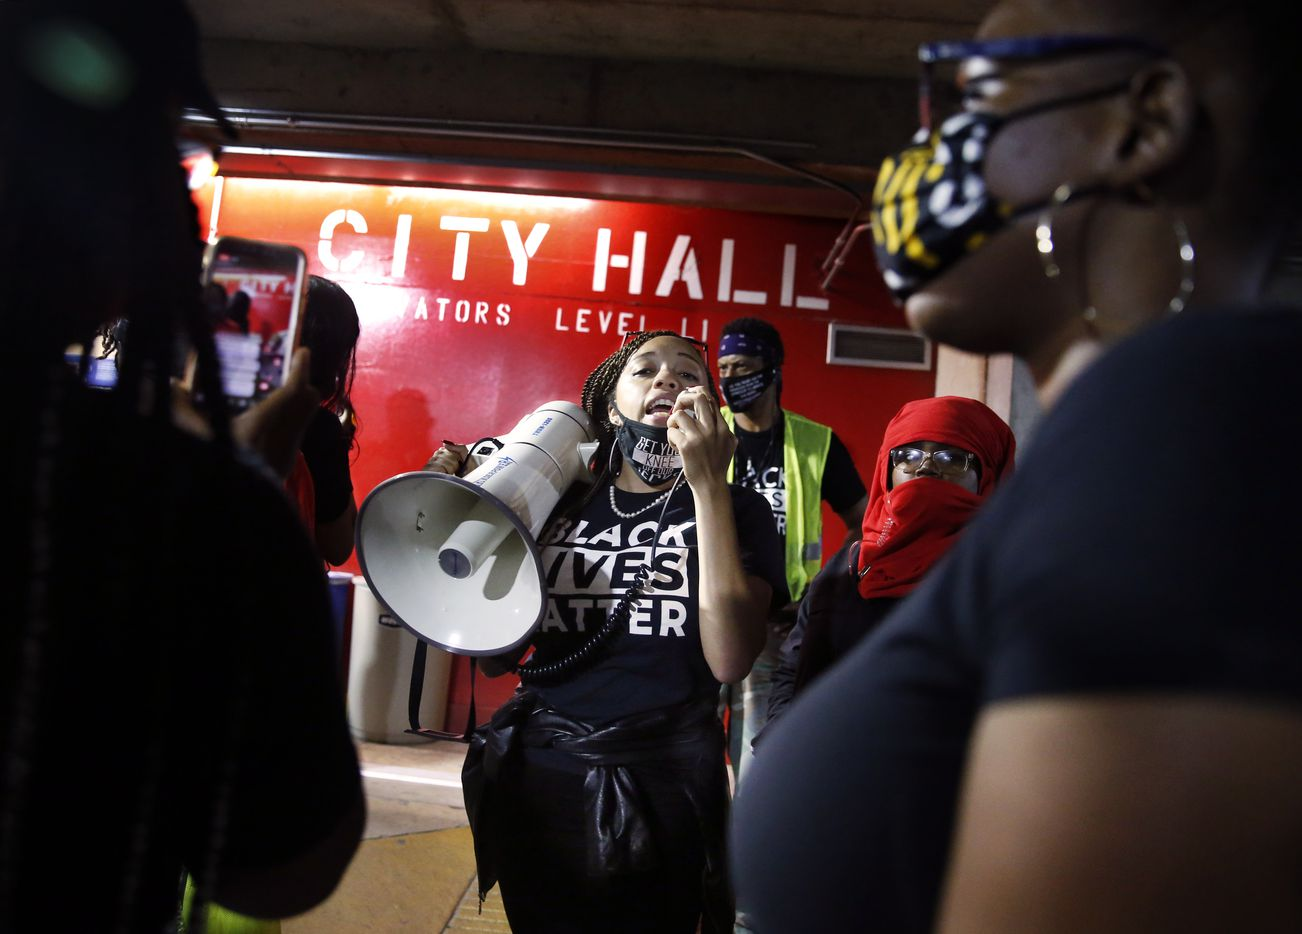 Next Generation Action Network led a parade of protestors down inside the City Hall parking garage where they tried to interrupt the Dallas City Council meeting. The small group was met by Dallas Police as they attempted to enter, Wednesday, September 23, 2020. They were there in support of Breonna Taylor who was killed by Louisville, Kentucky police.  A Kentucky grand jury brought no charges against the Louisville police for the killing of Taylor during a drug raid gone wrong. (Tom Fox/The Dallas Morning News)